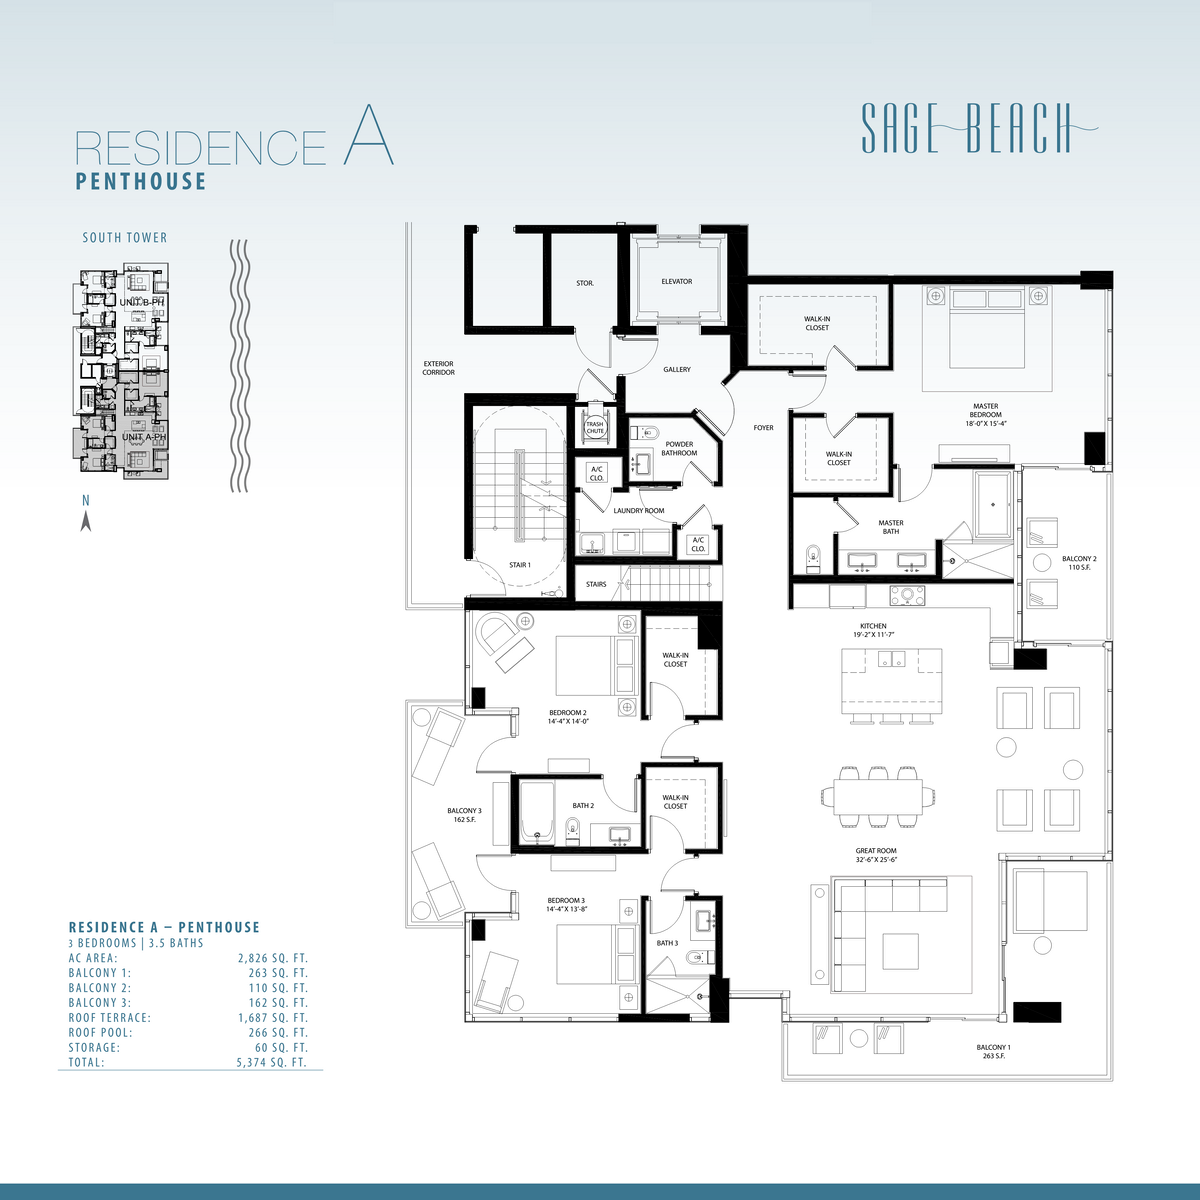 Sage Beach - Floorplan 1